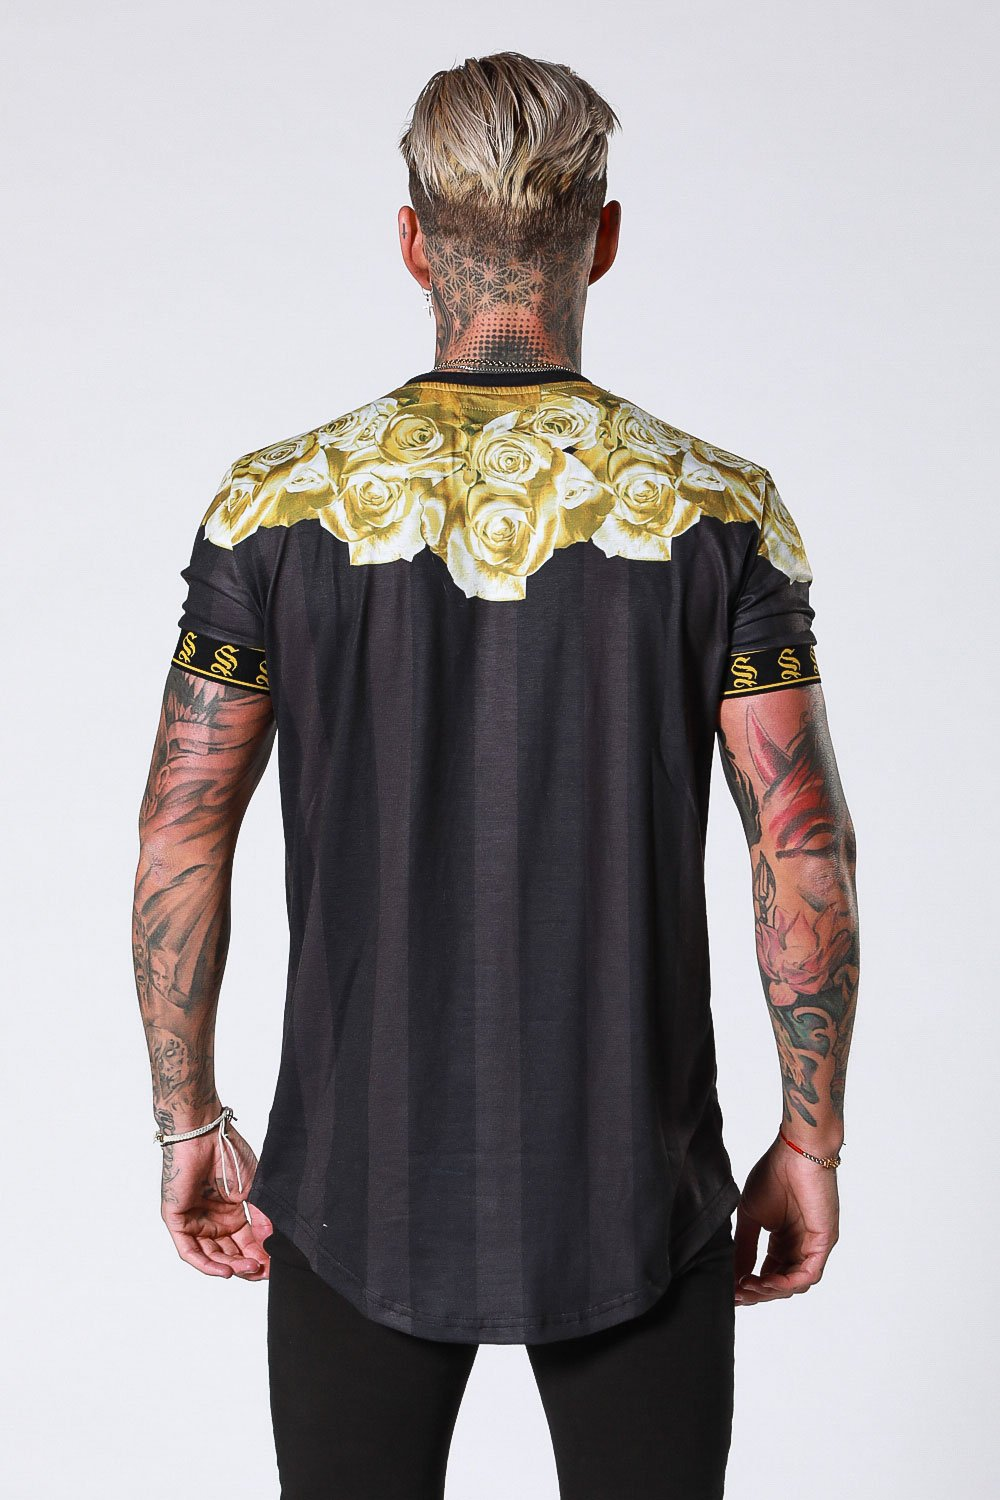 GOLD ROSE GARLAND TEE - BLACK BY SINNERS ATTIRE